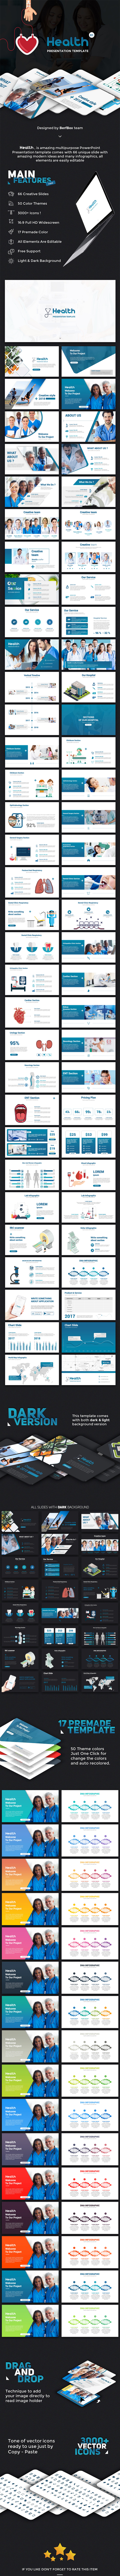 Health PowerPoint Presentation Template - PowerPoint Templates Presentation Templates